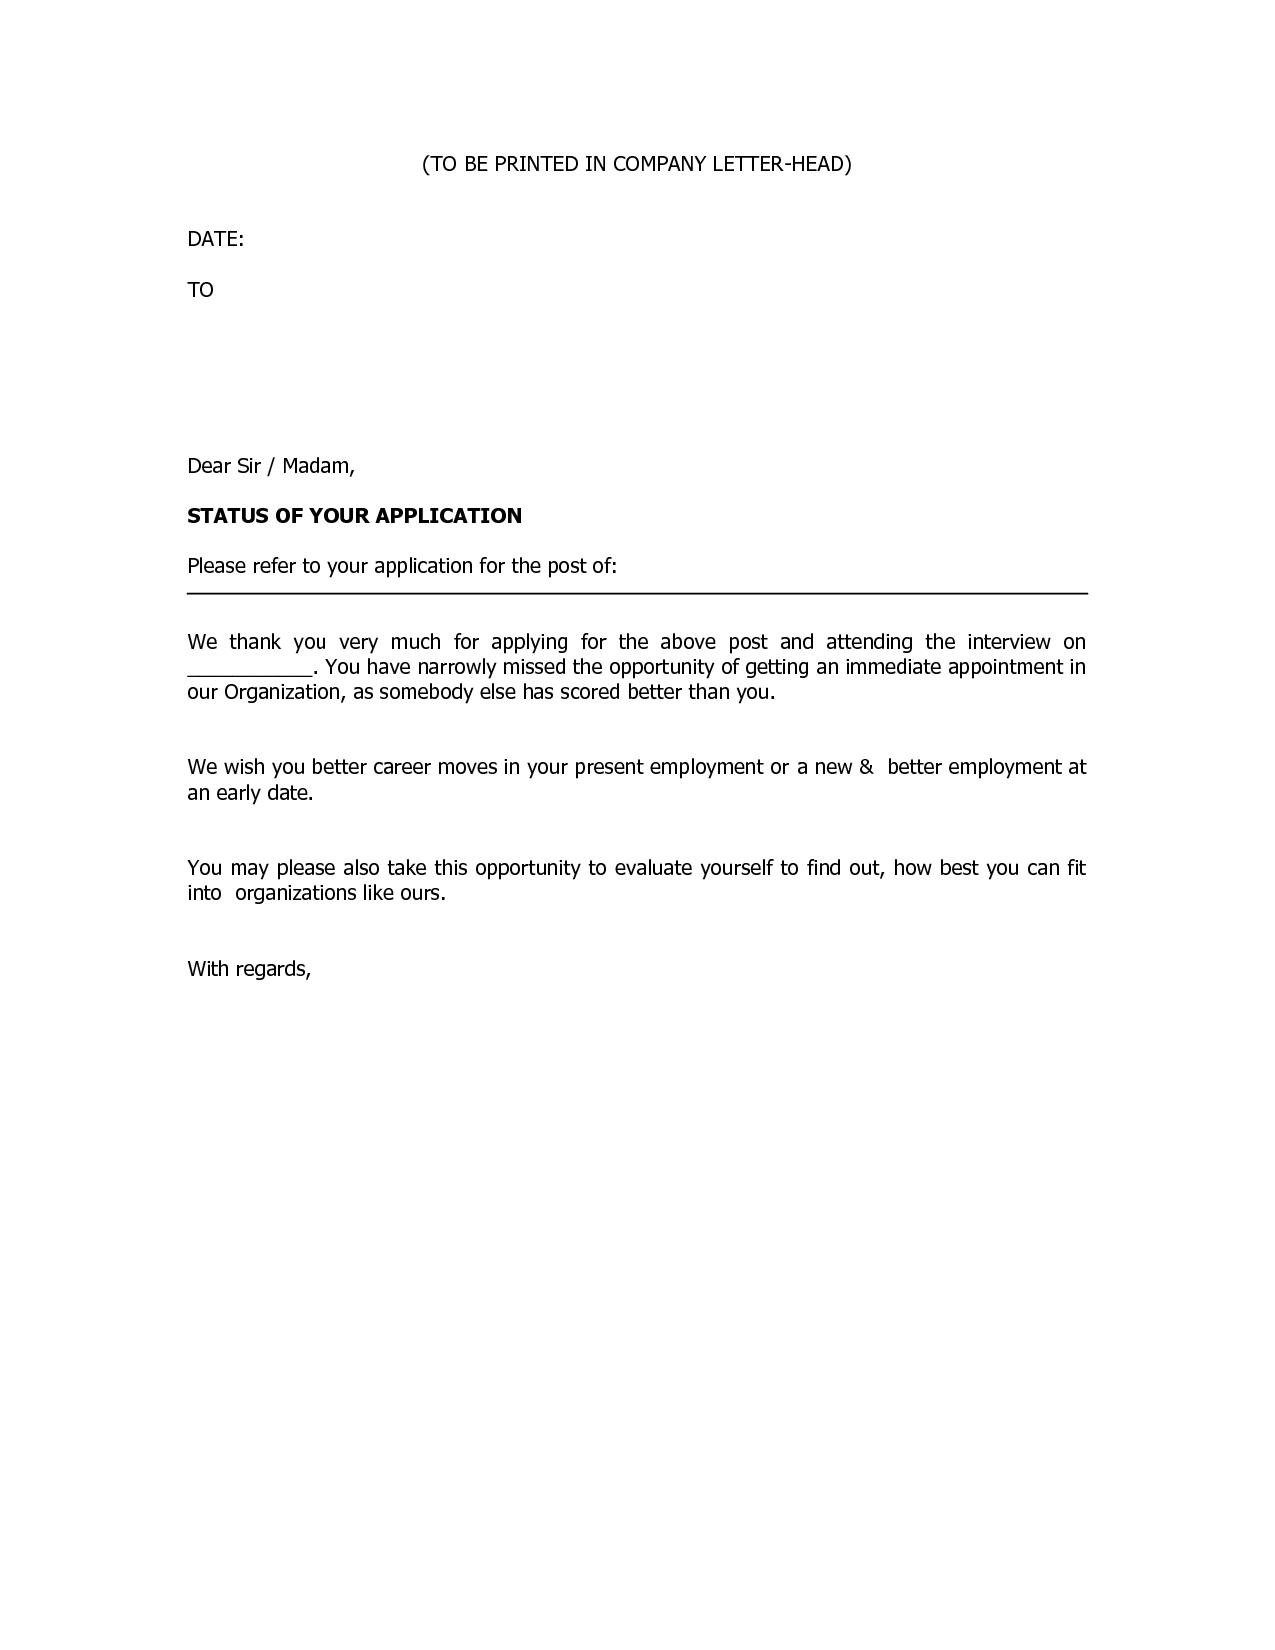 Business Rejection Letter - Rejection Letters are usually addressed to applicants who are not ...